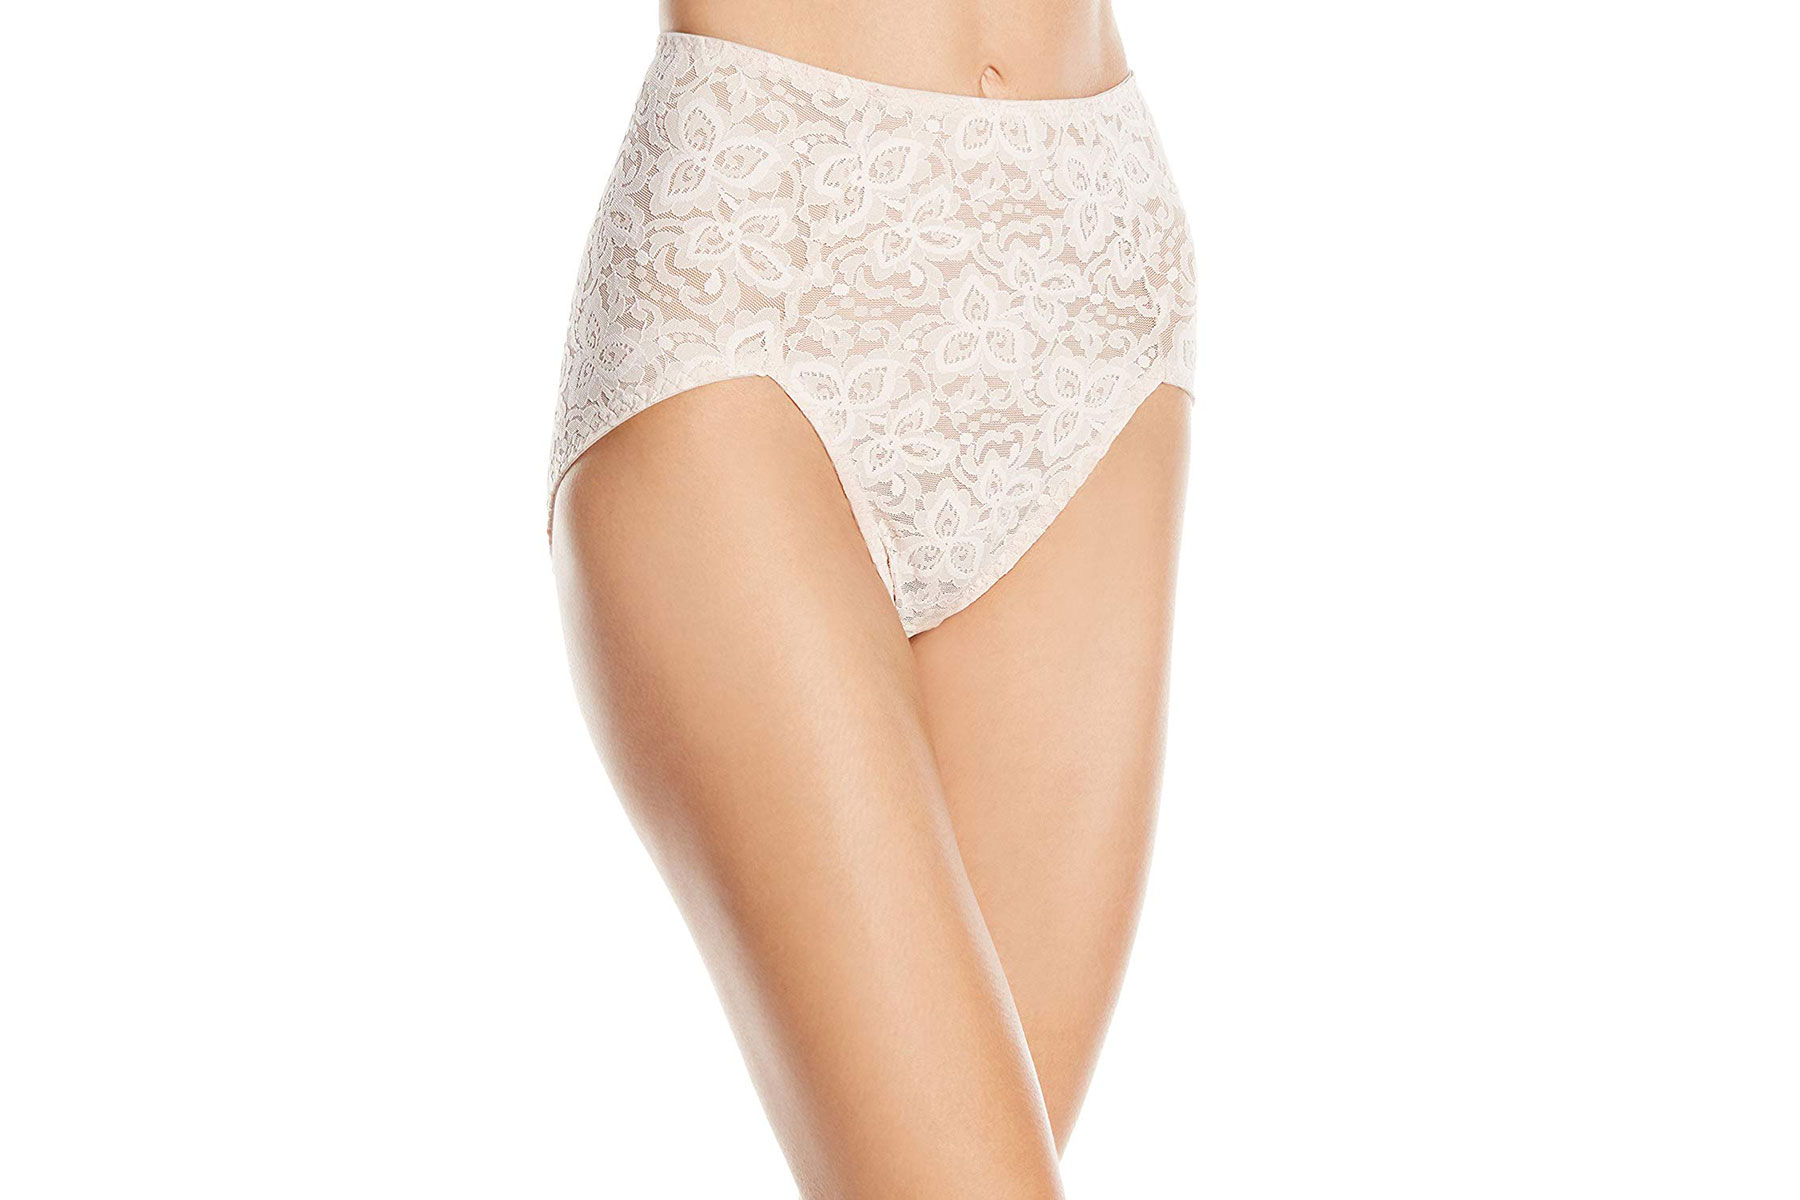 Bali Women's Shapewear Lace 'N Smooth Brief